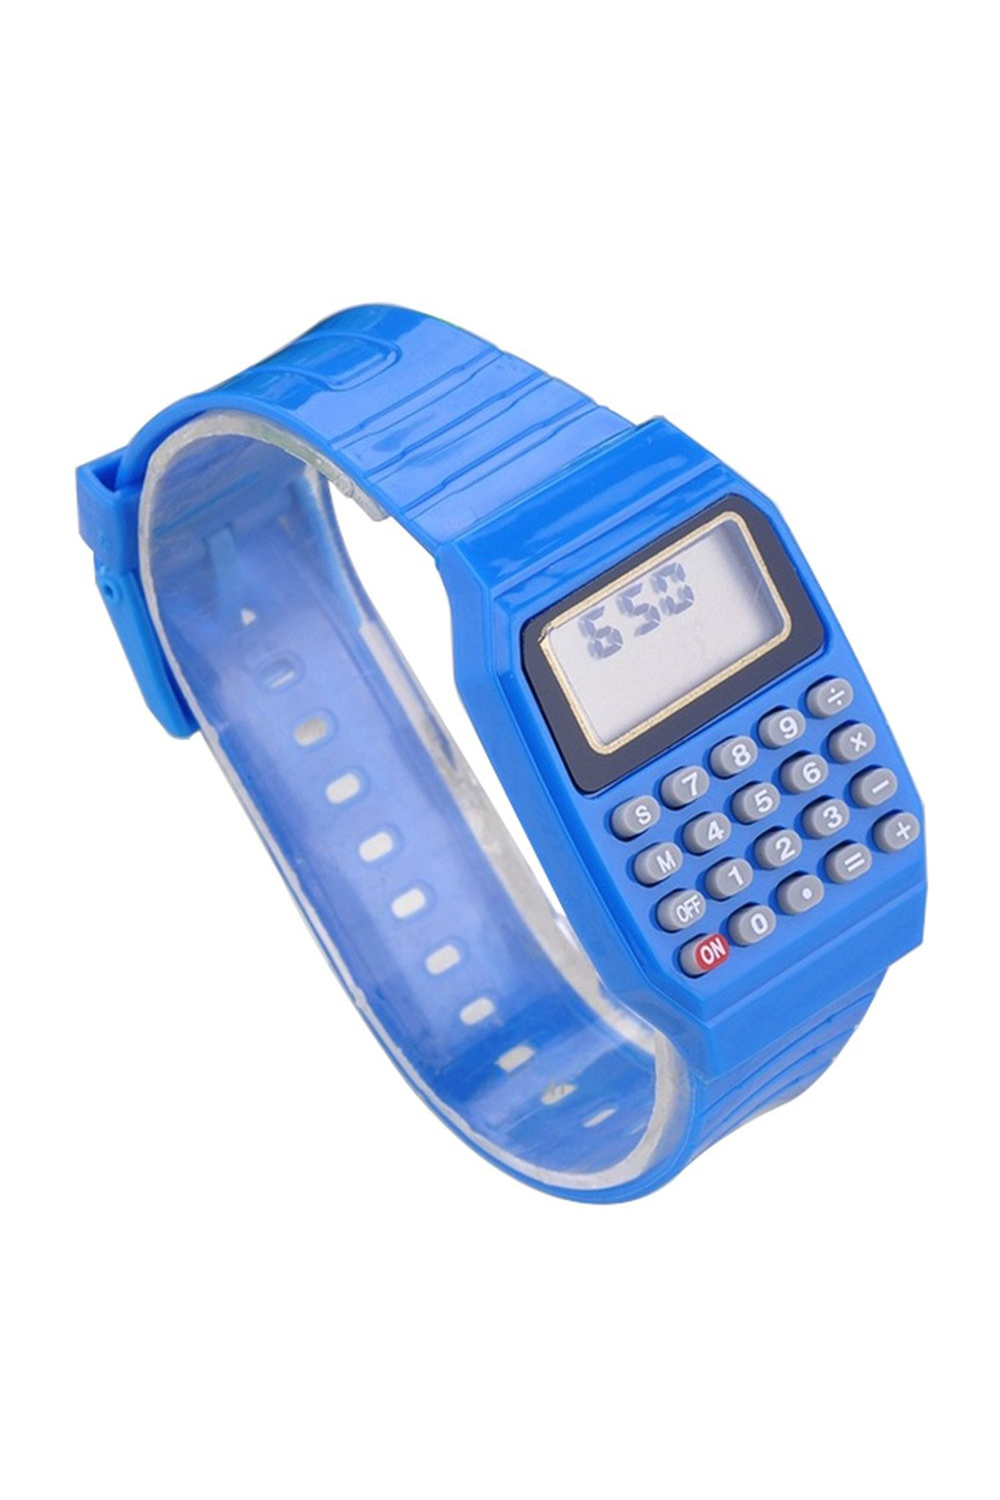 BLEL Hot Boys And Girls Silicone Date Display Electronic Watch Multifunction Calculator Watch Kids Calculator Watch